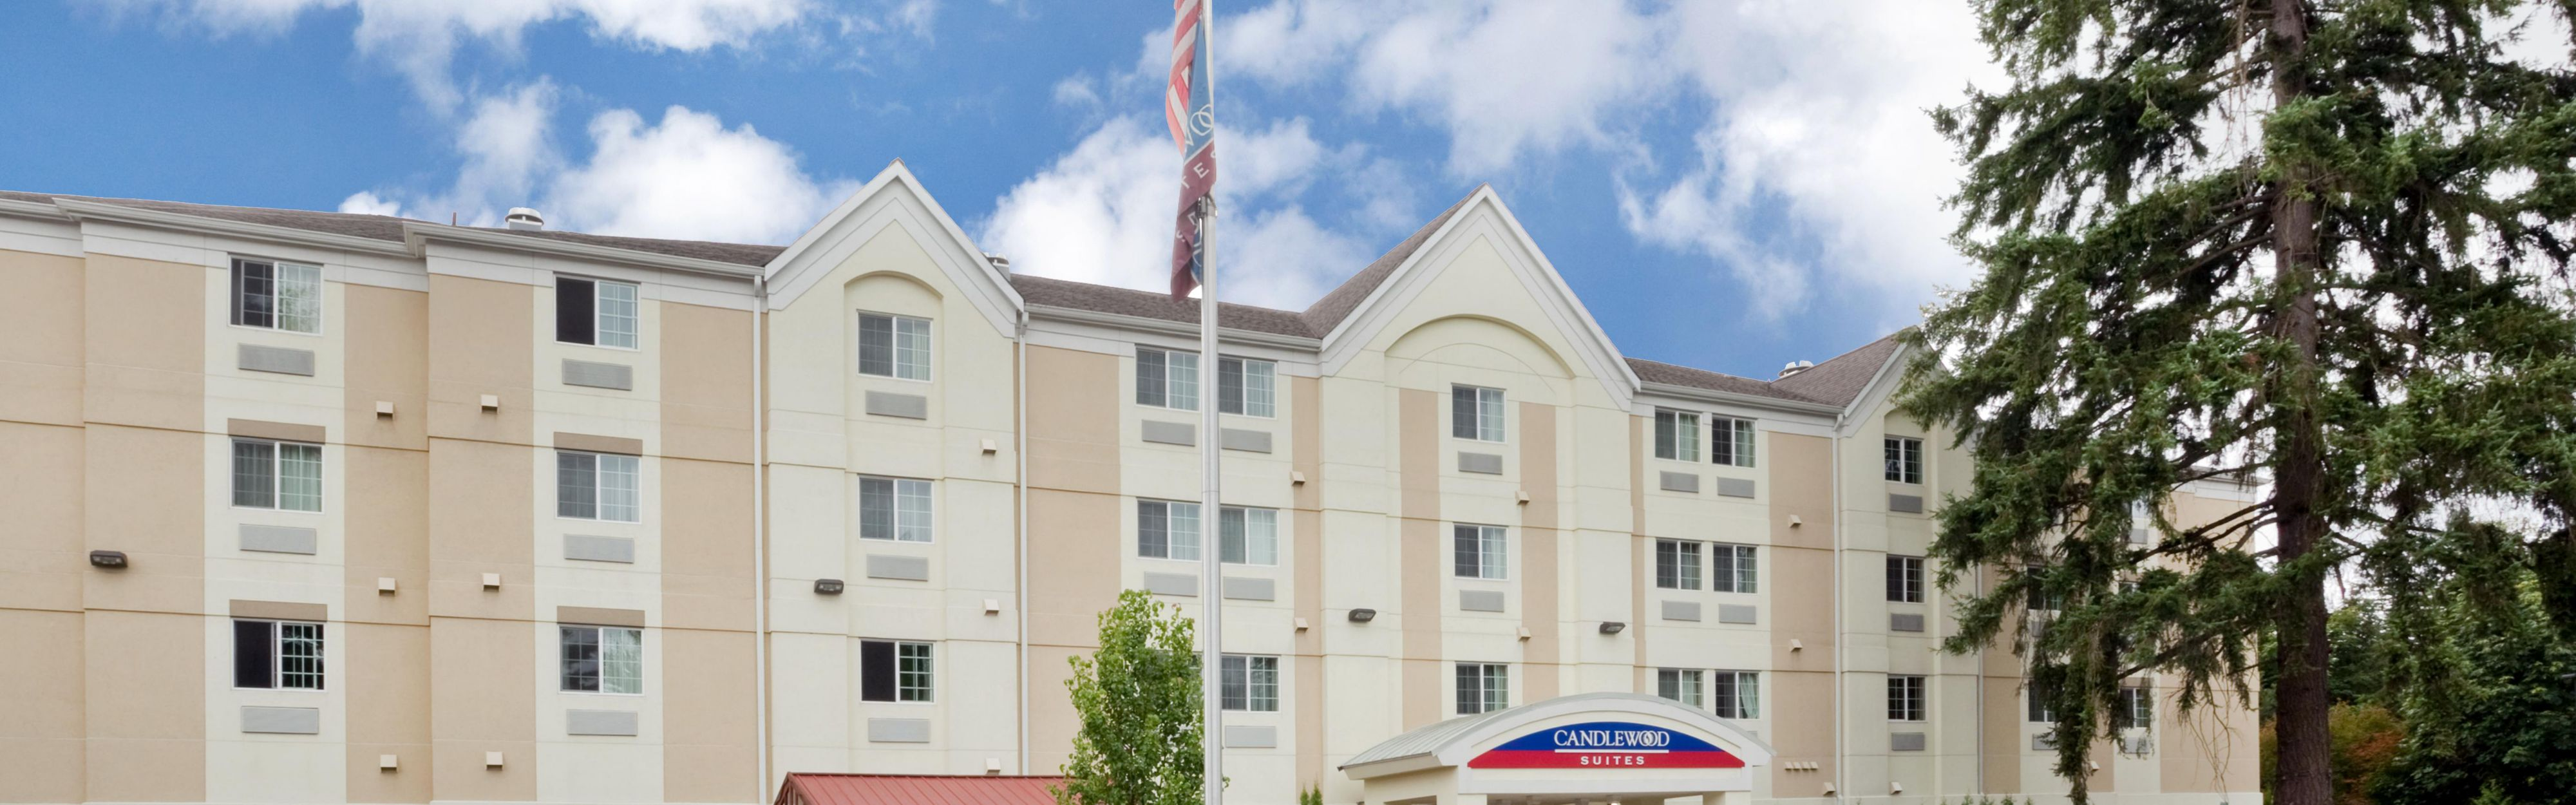 Candlewood Suites Olympia/Lacey image 0